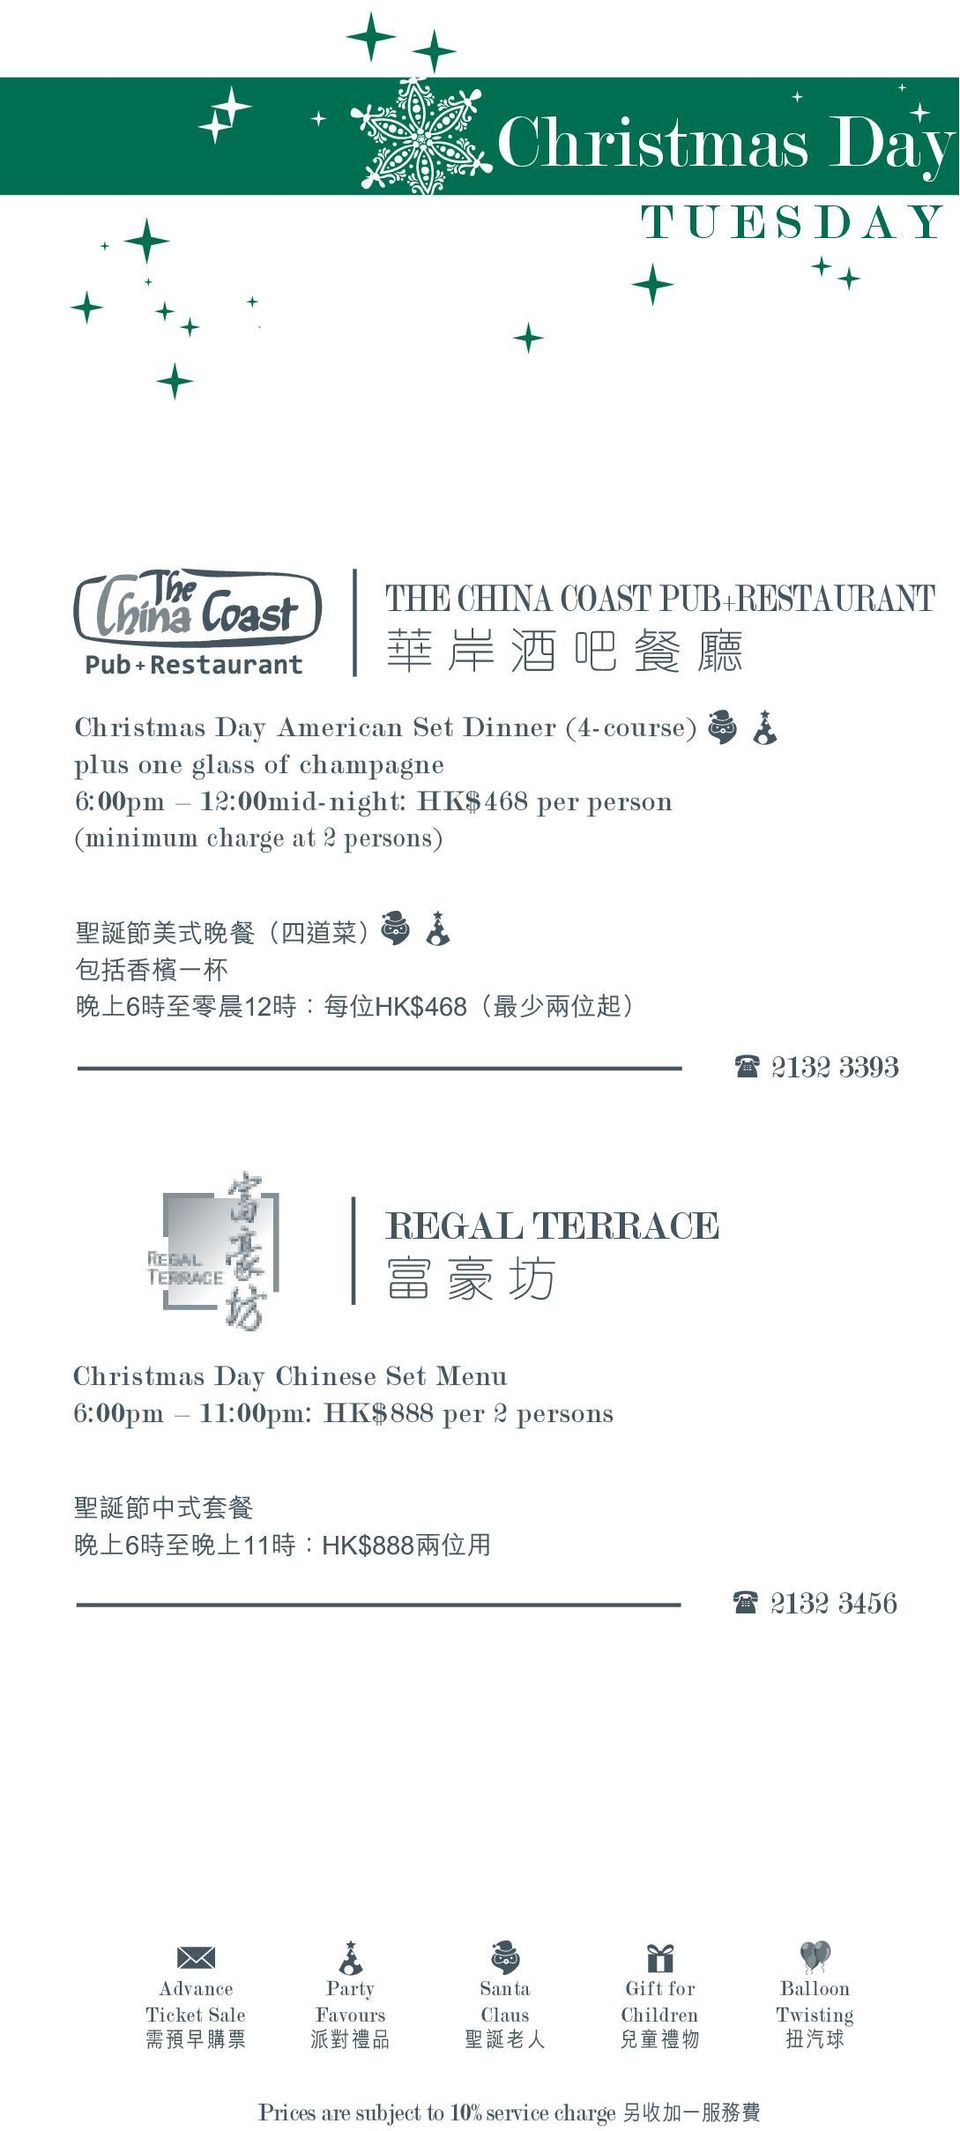 3393 REGAL TERRACE Christmas Day Chinese Set Menu 6:00pm 11:00pm: HK$888 per 2 persons ( 2132 3456 Advance